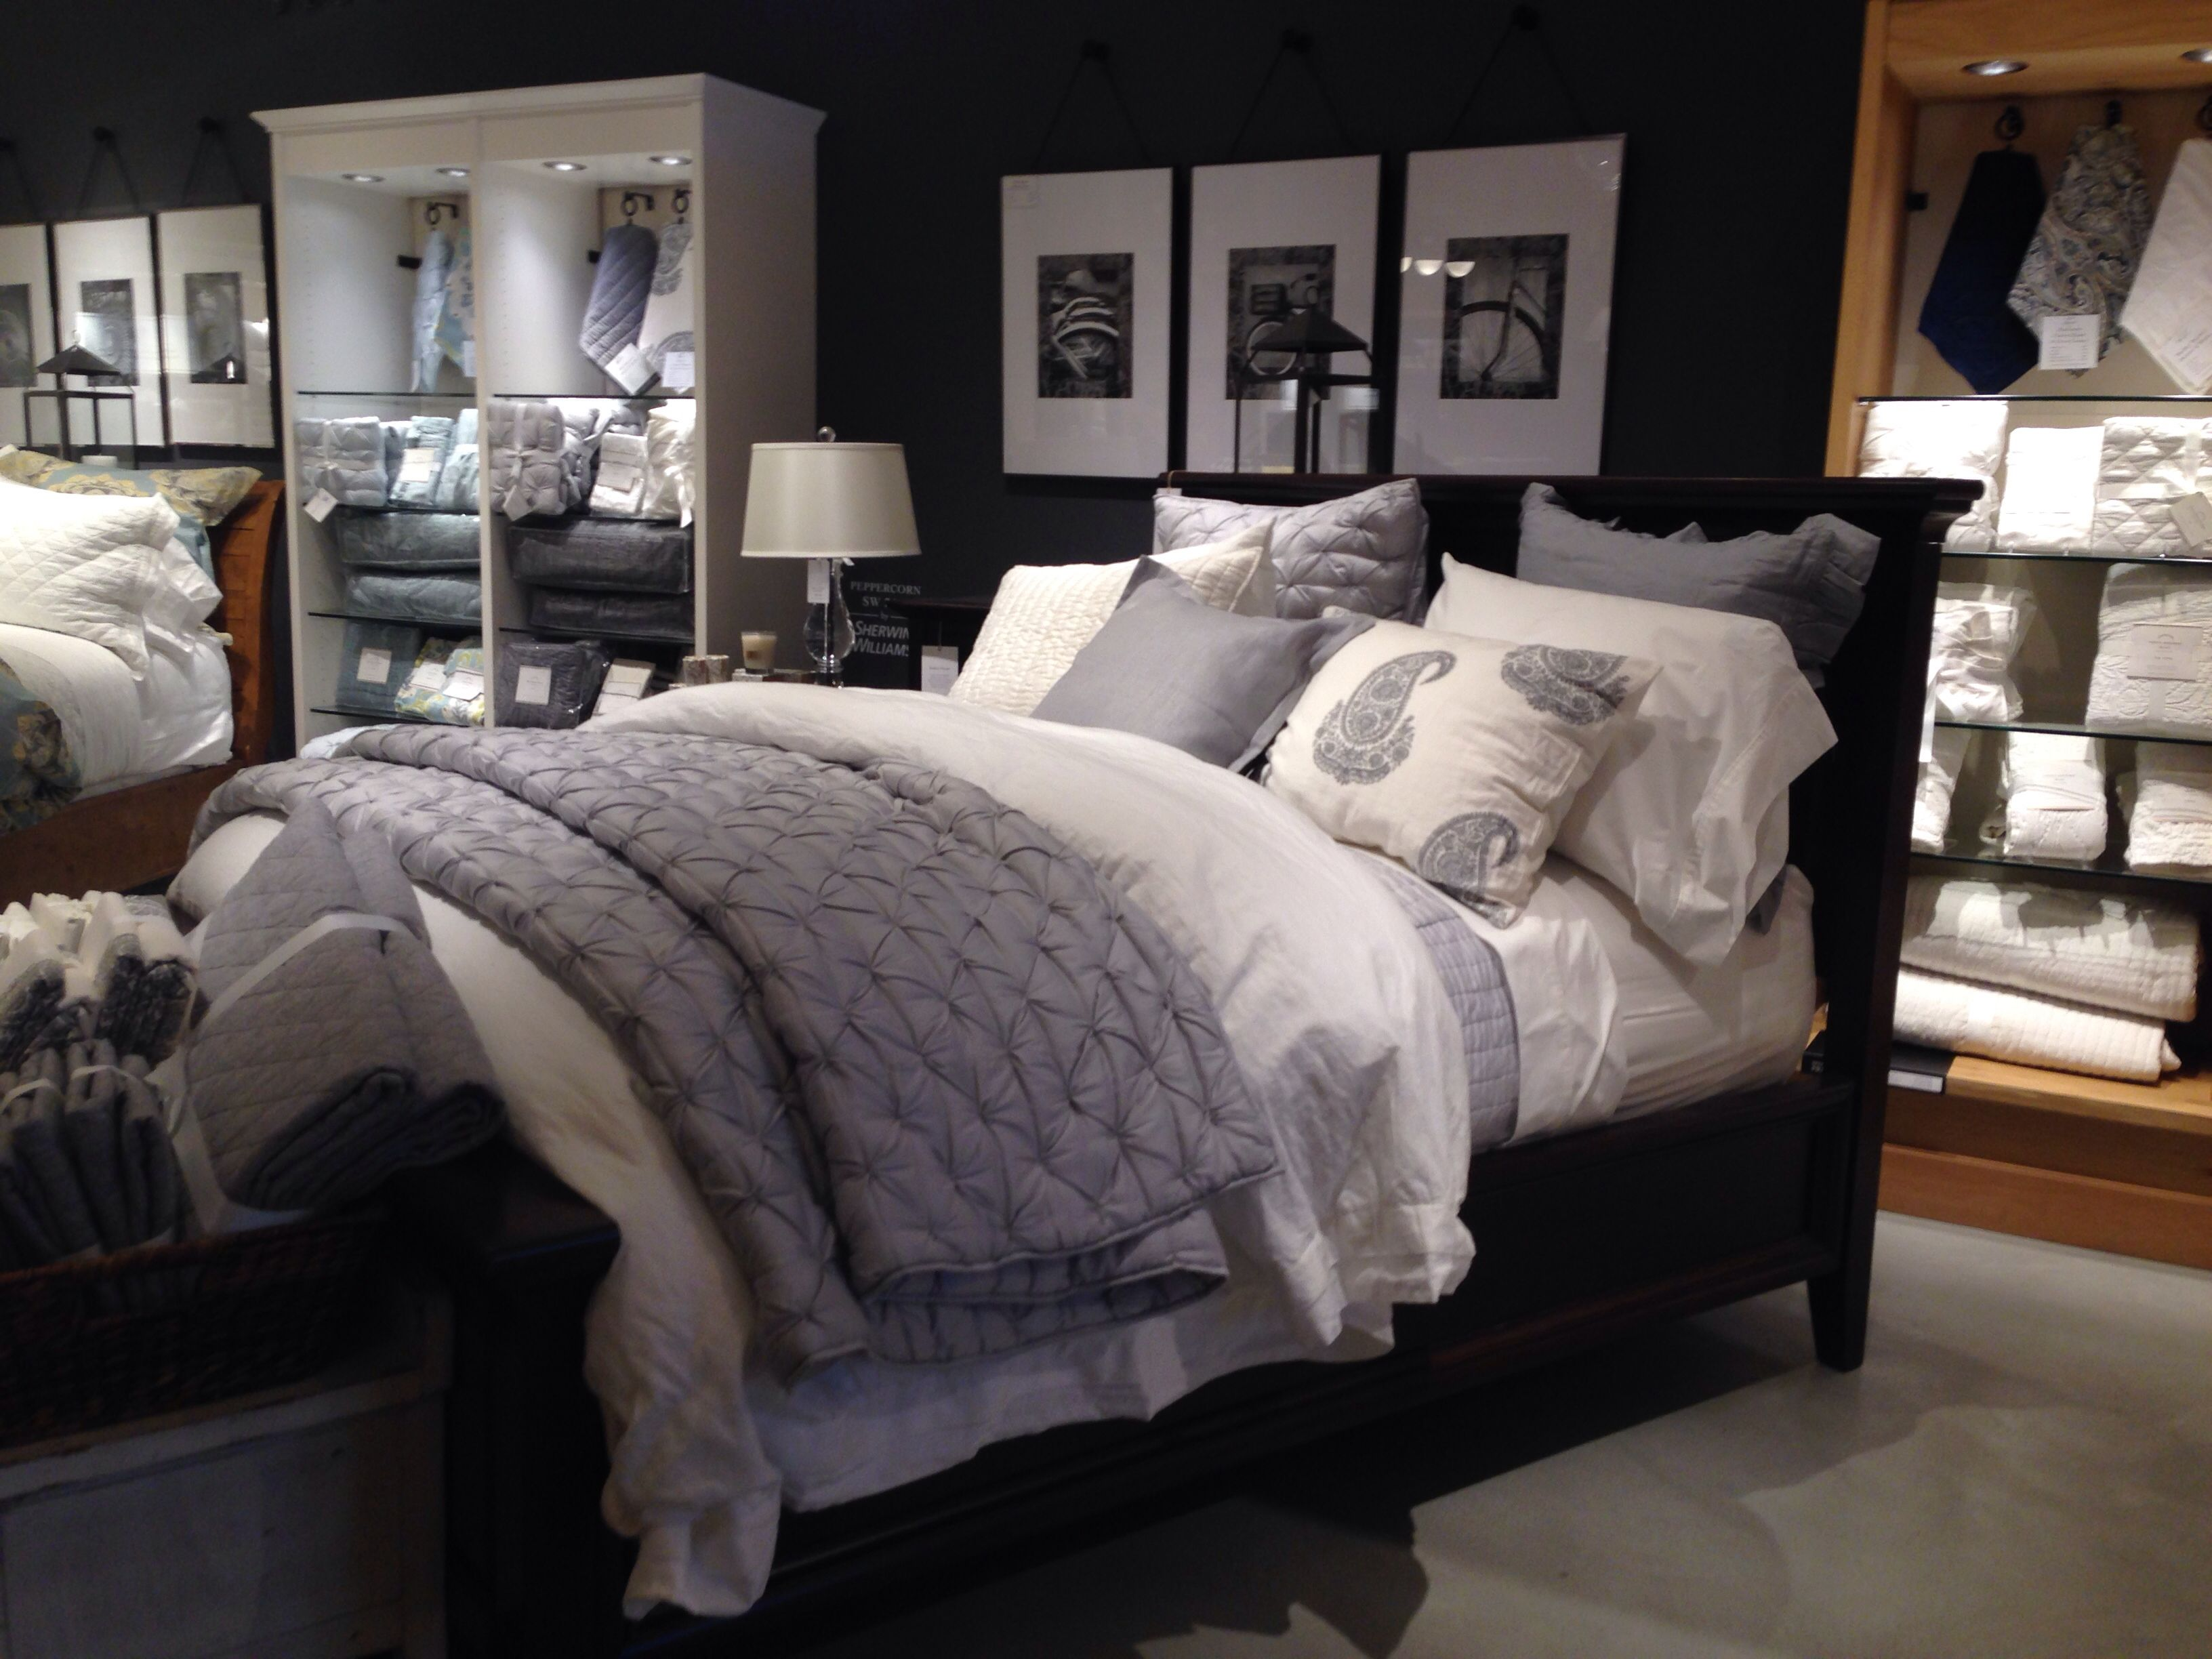 Live this bed set